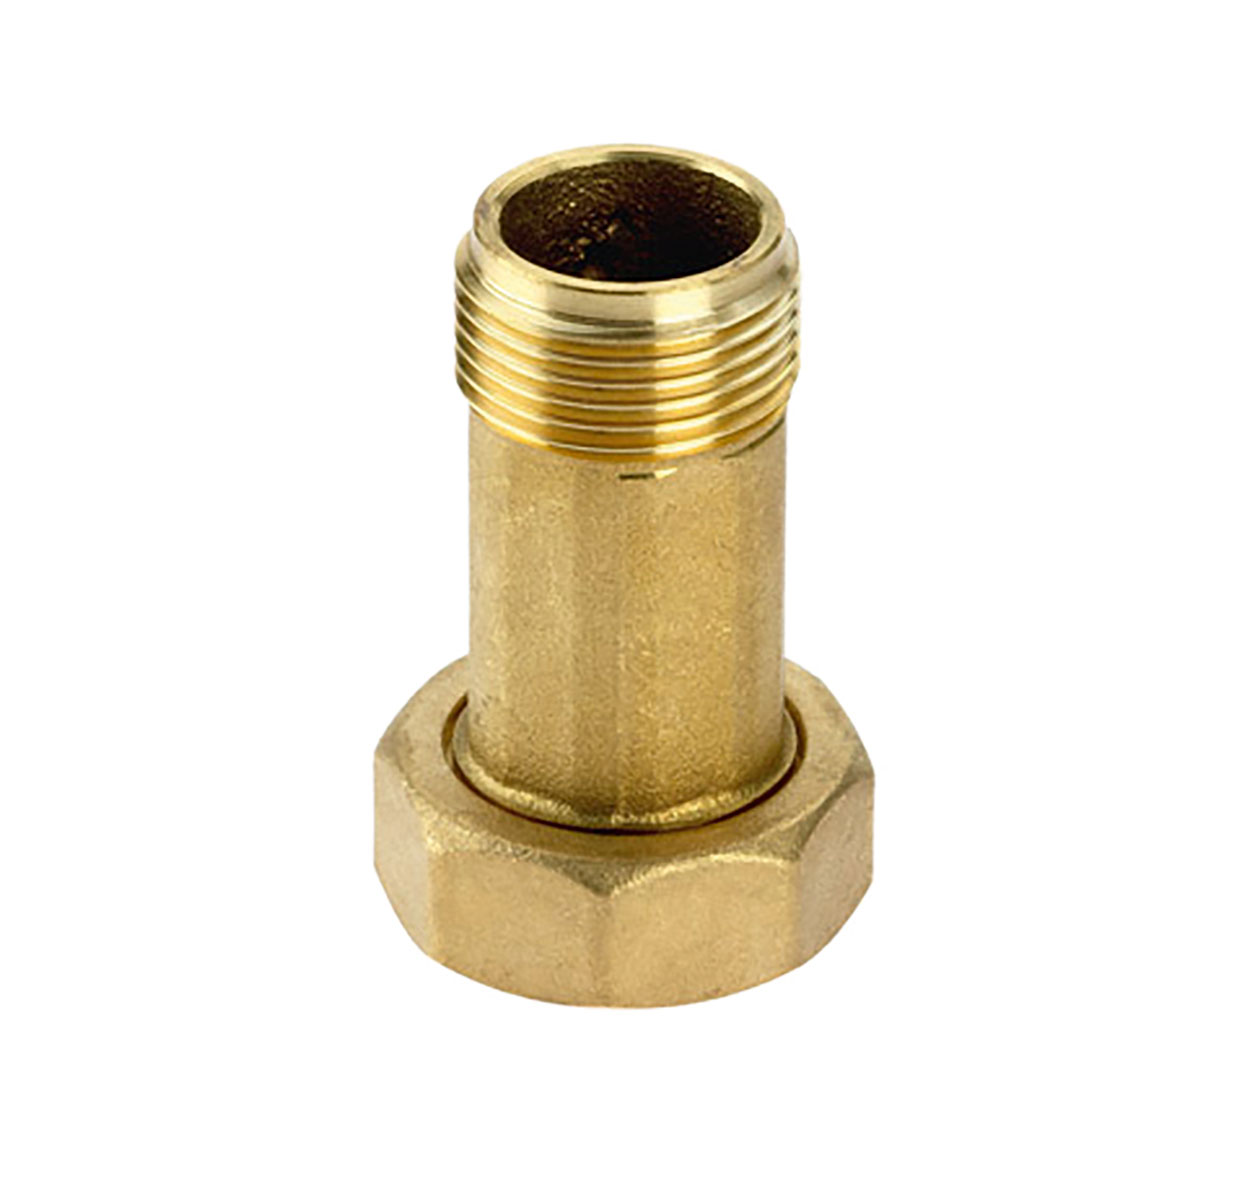 5051150 - Water meter Screw connection